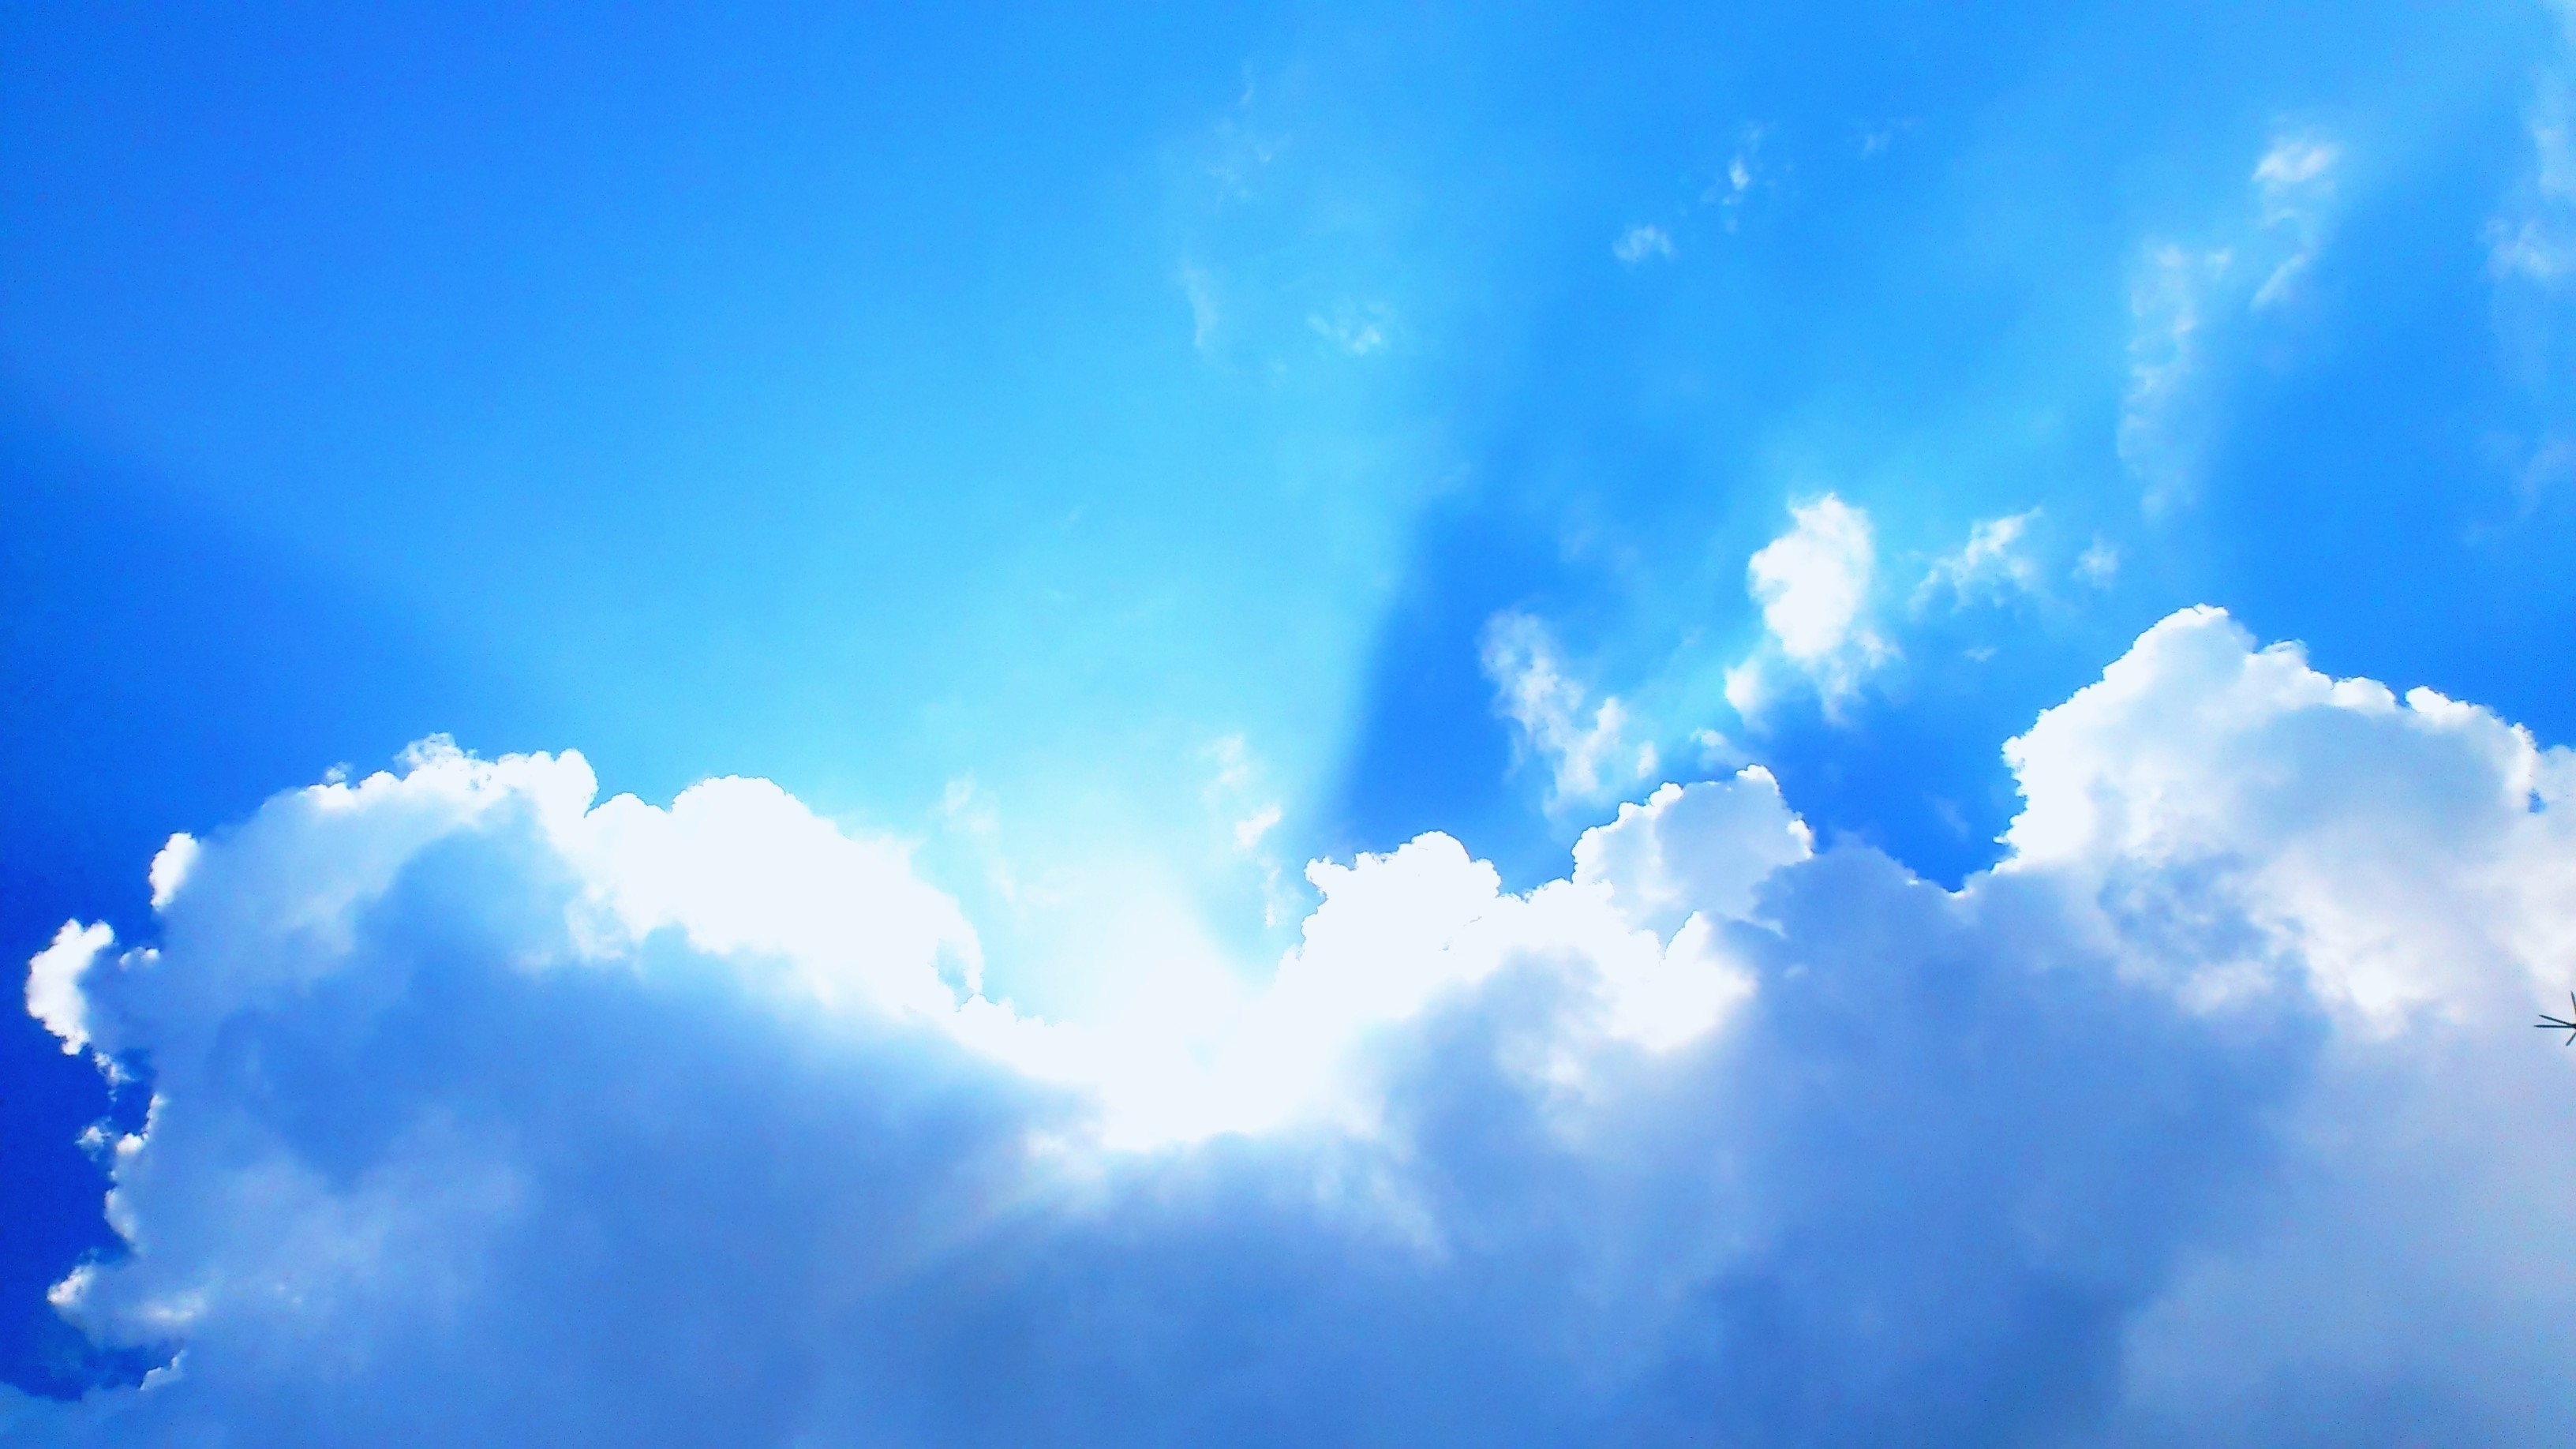 3264x1836  Blue Sky wallpapers for desktop. 47 · Download · Res: 1920x1200  ...